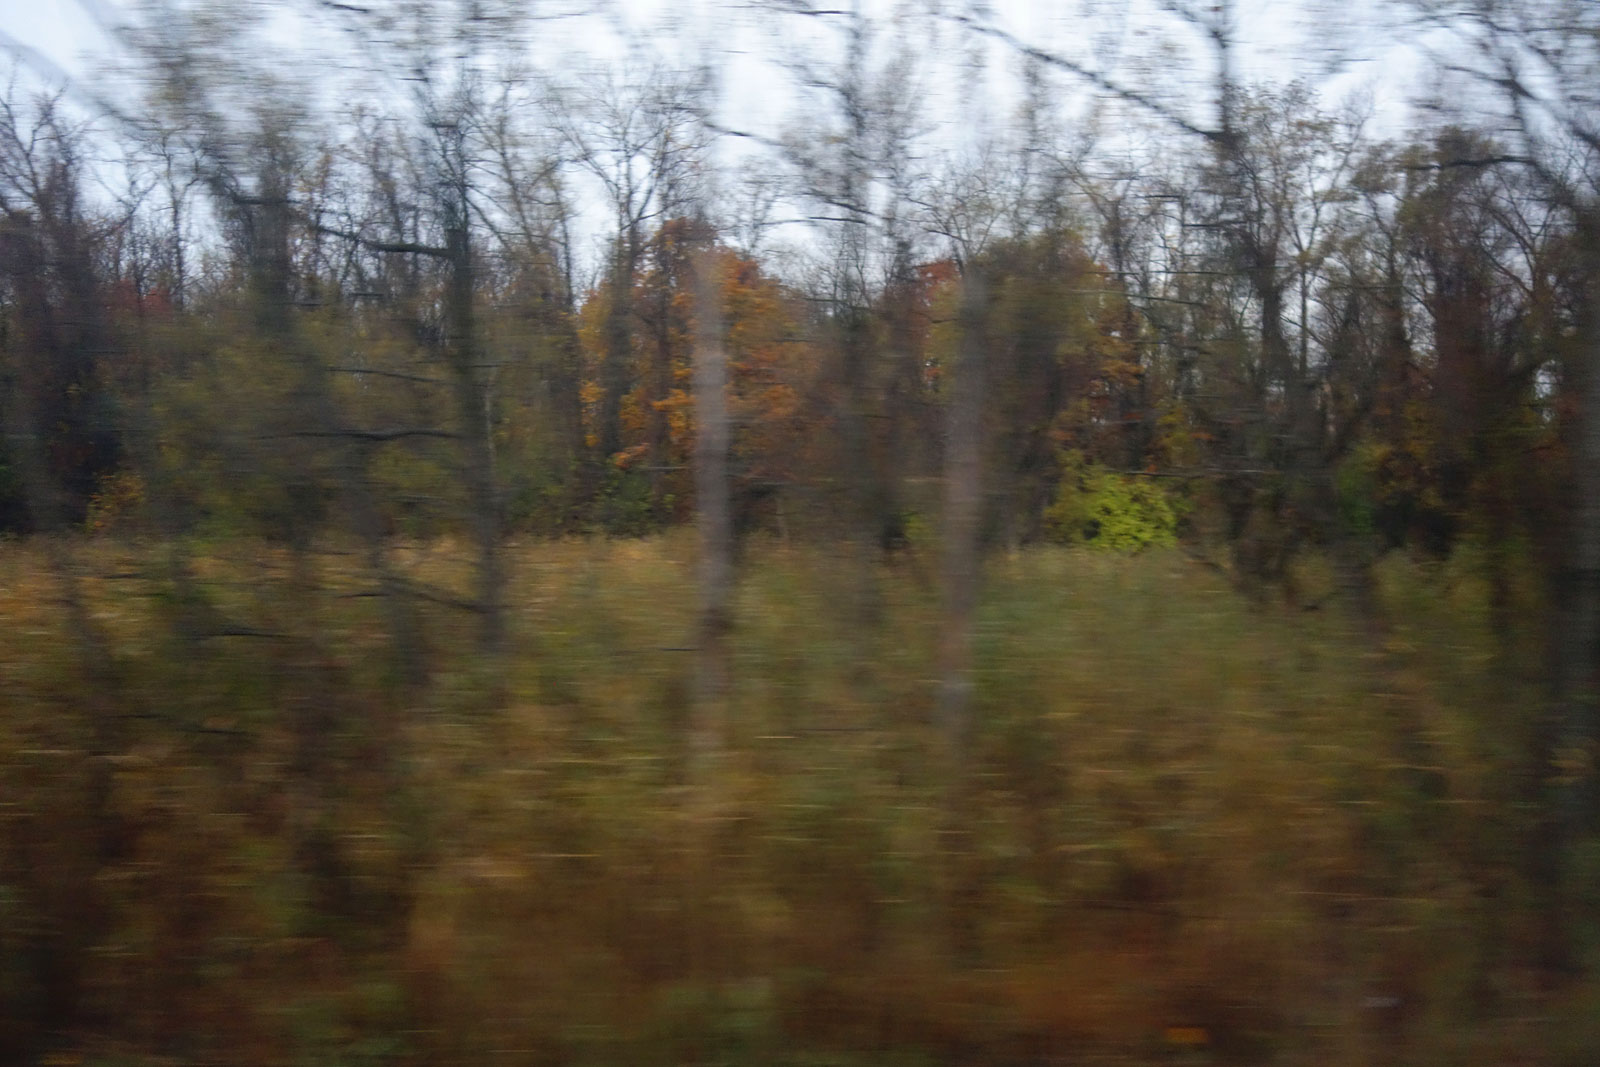 Blurry Autumn trees from train